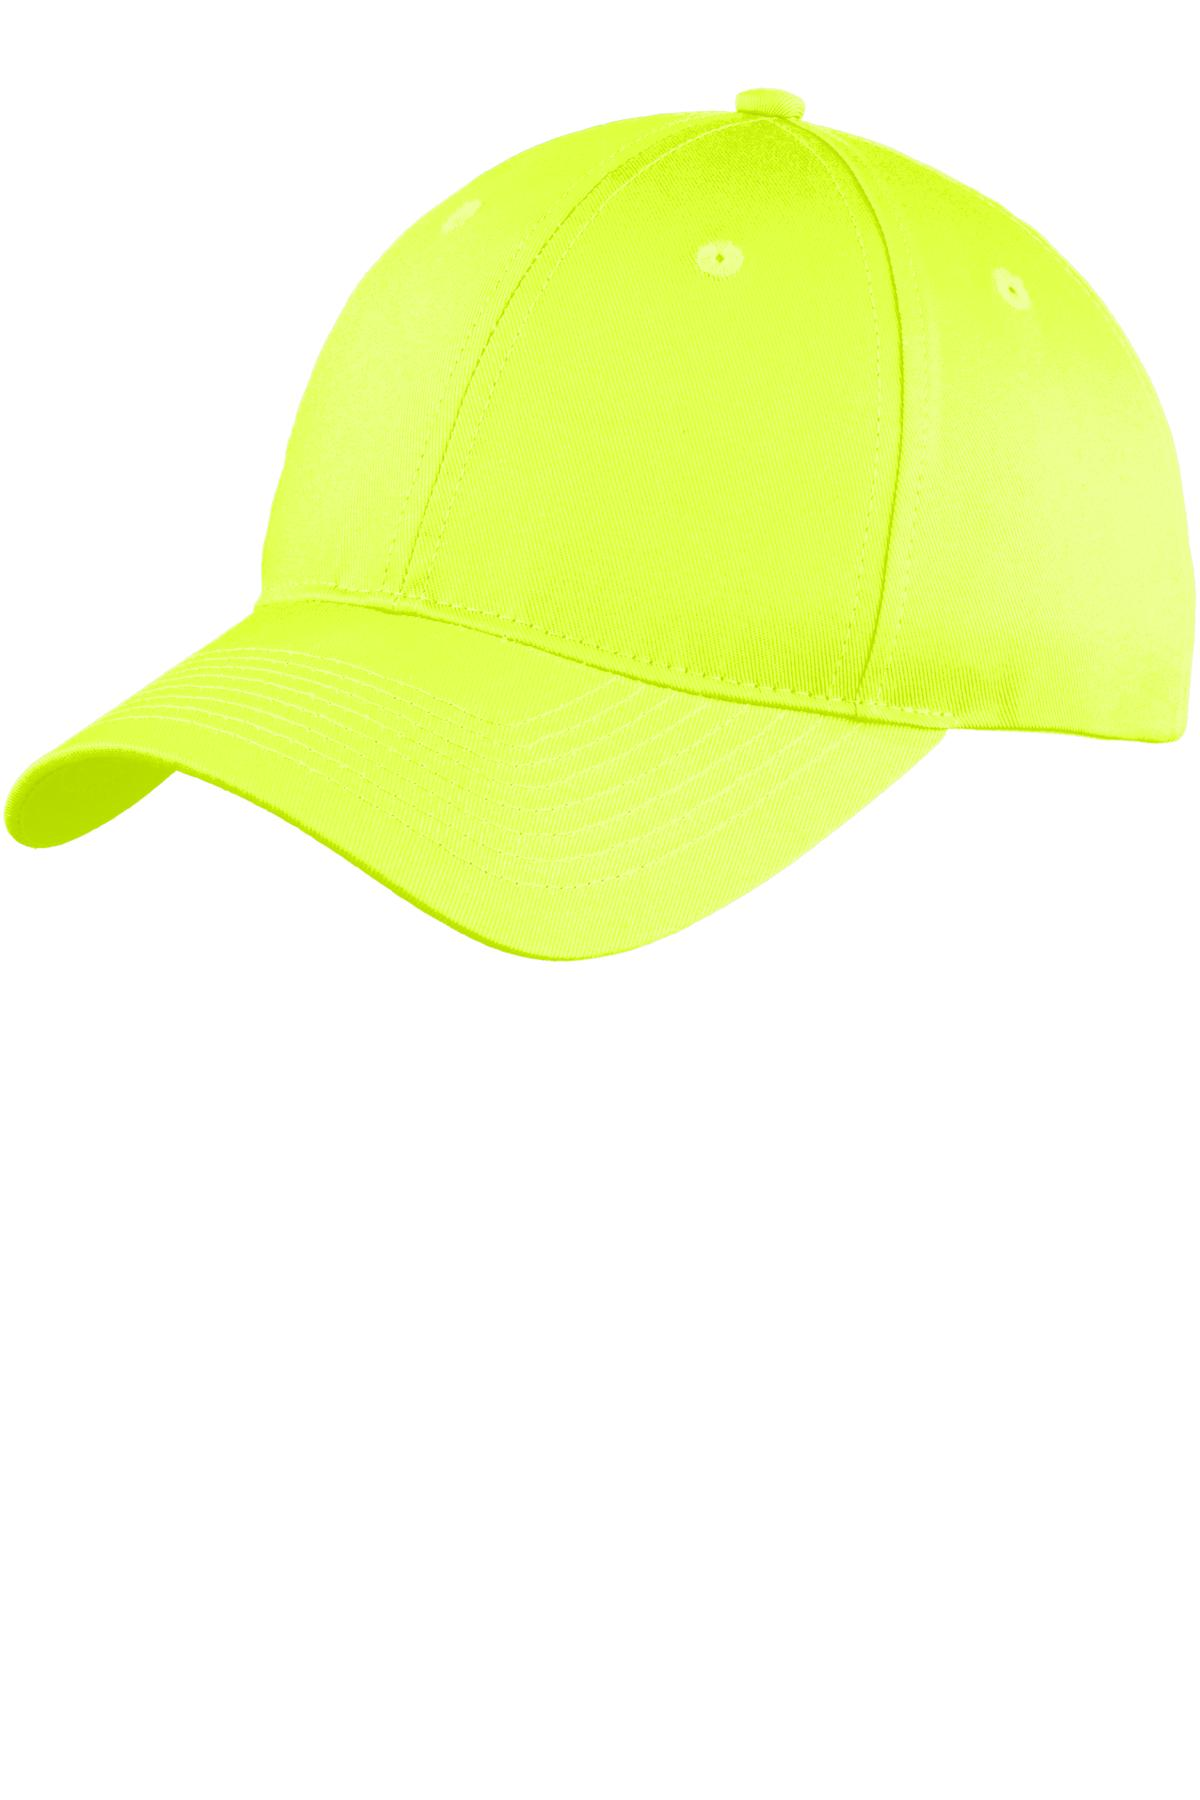 Port & Company ®  Six-Panel Unstructured Twill Cap. C914 - Neon Yellow